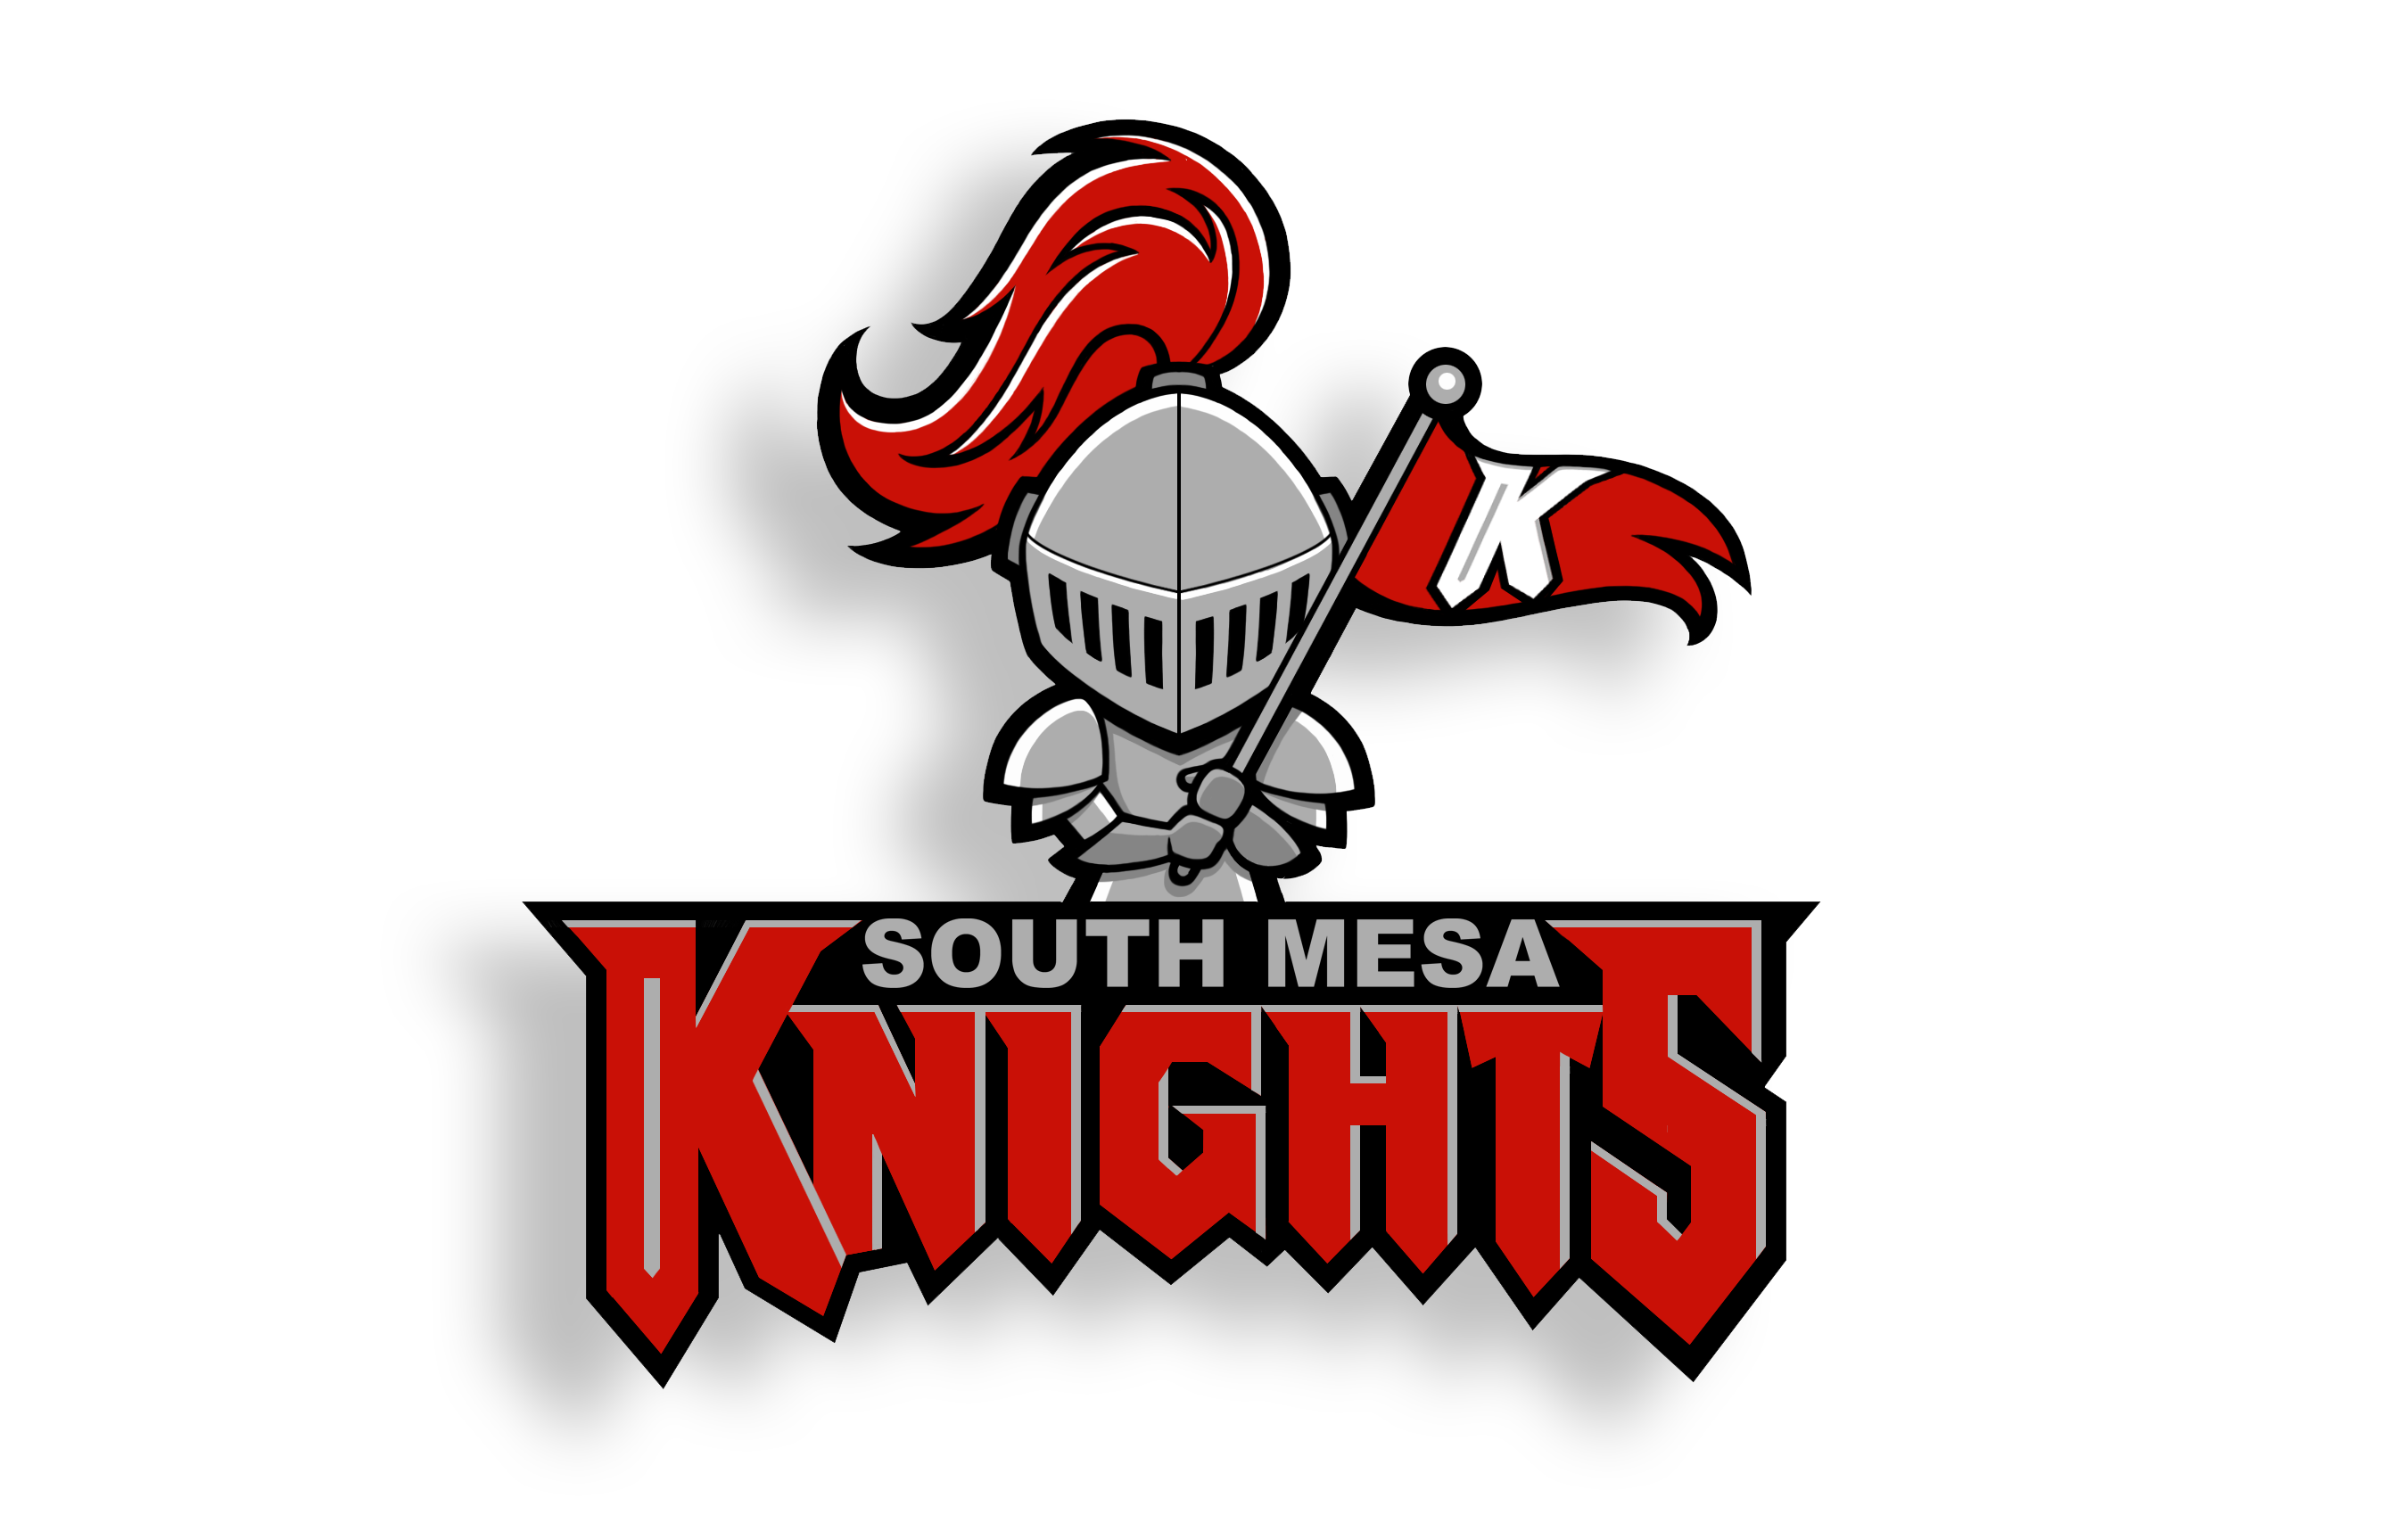 South Mesa Knights Logo